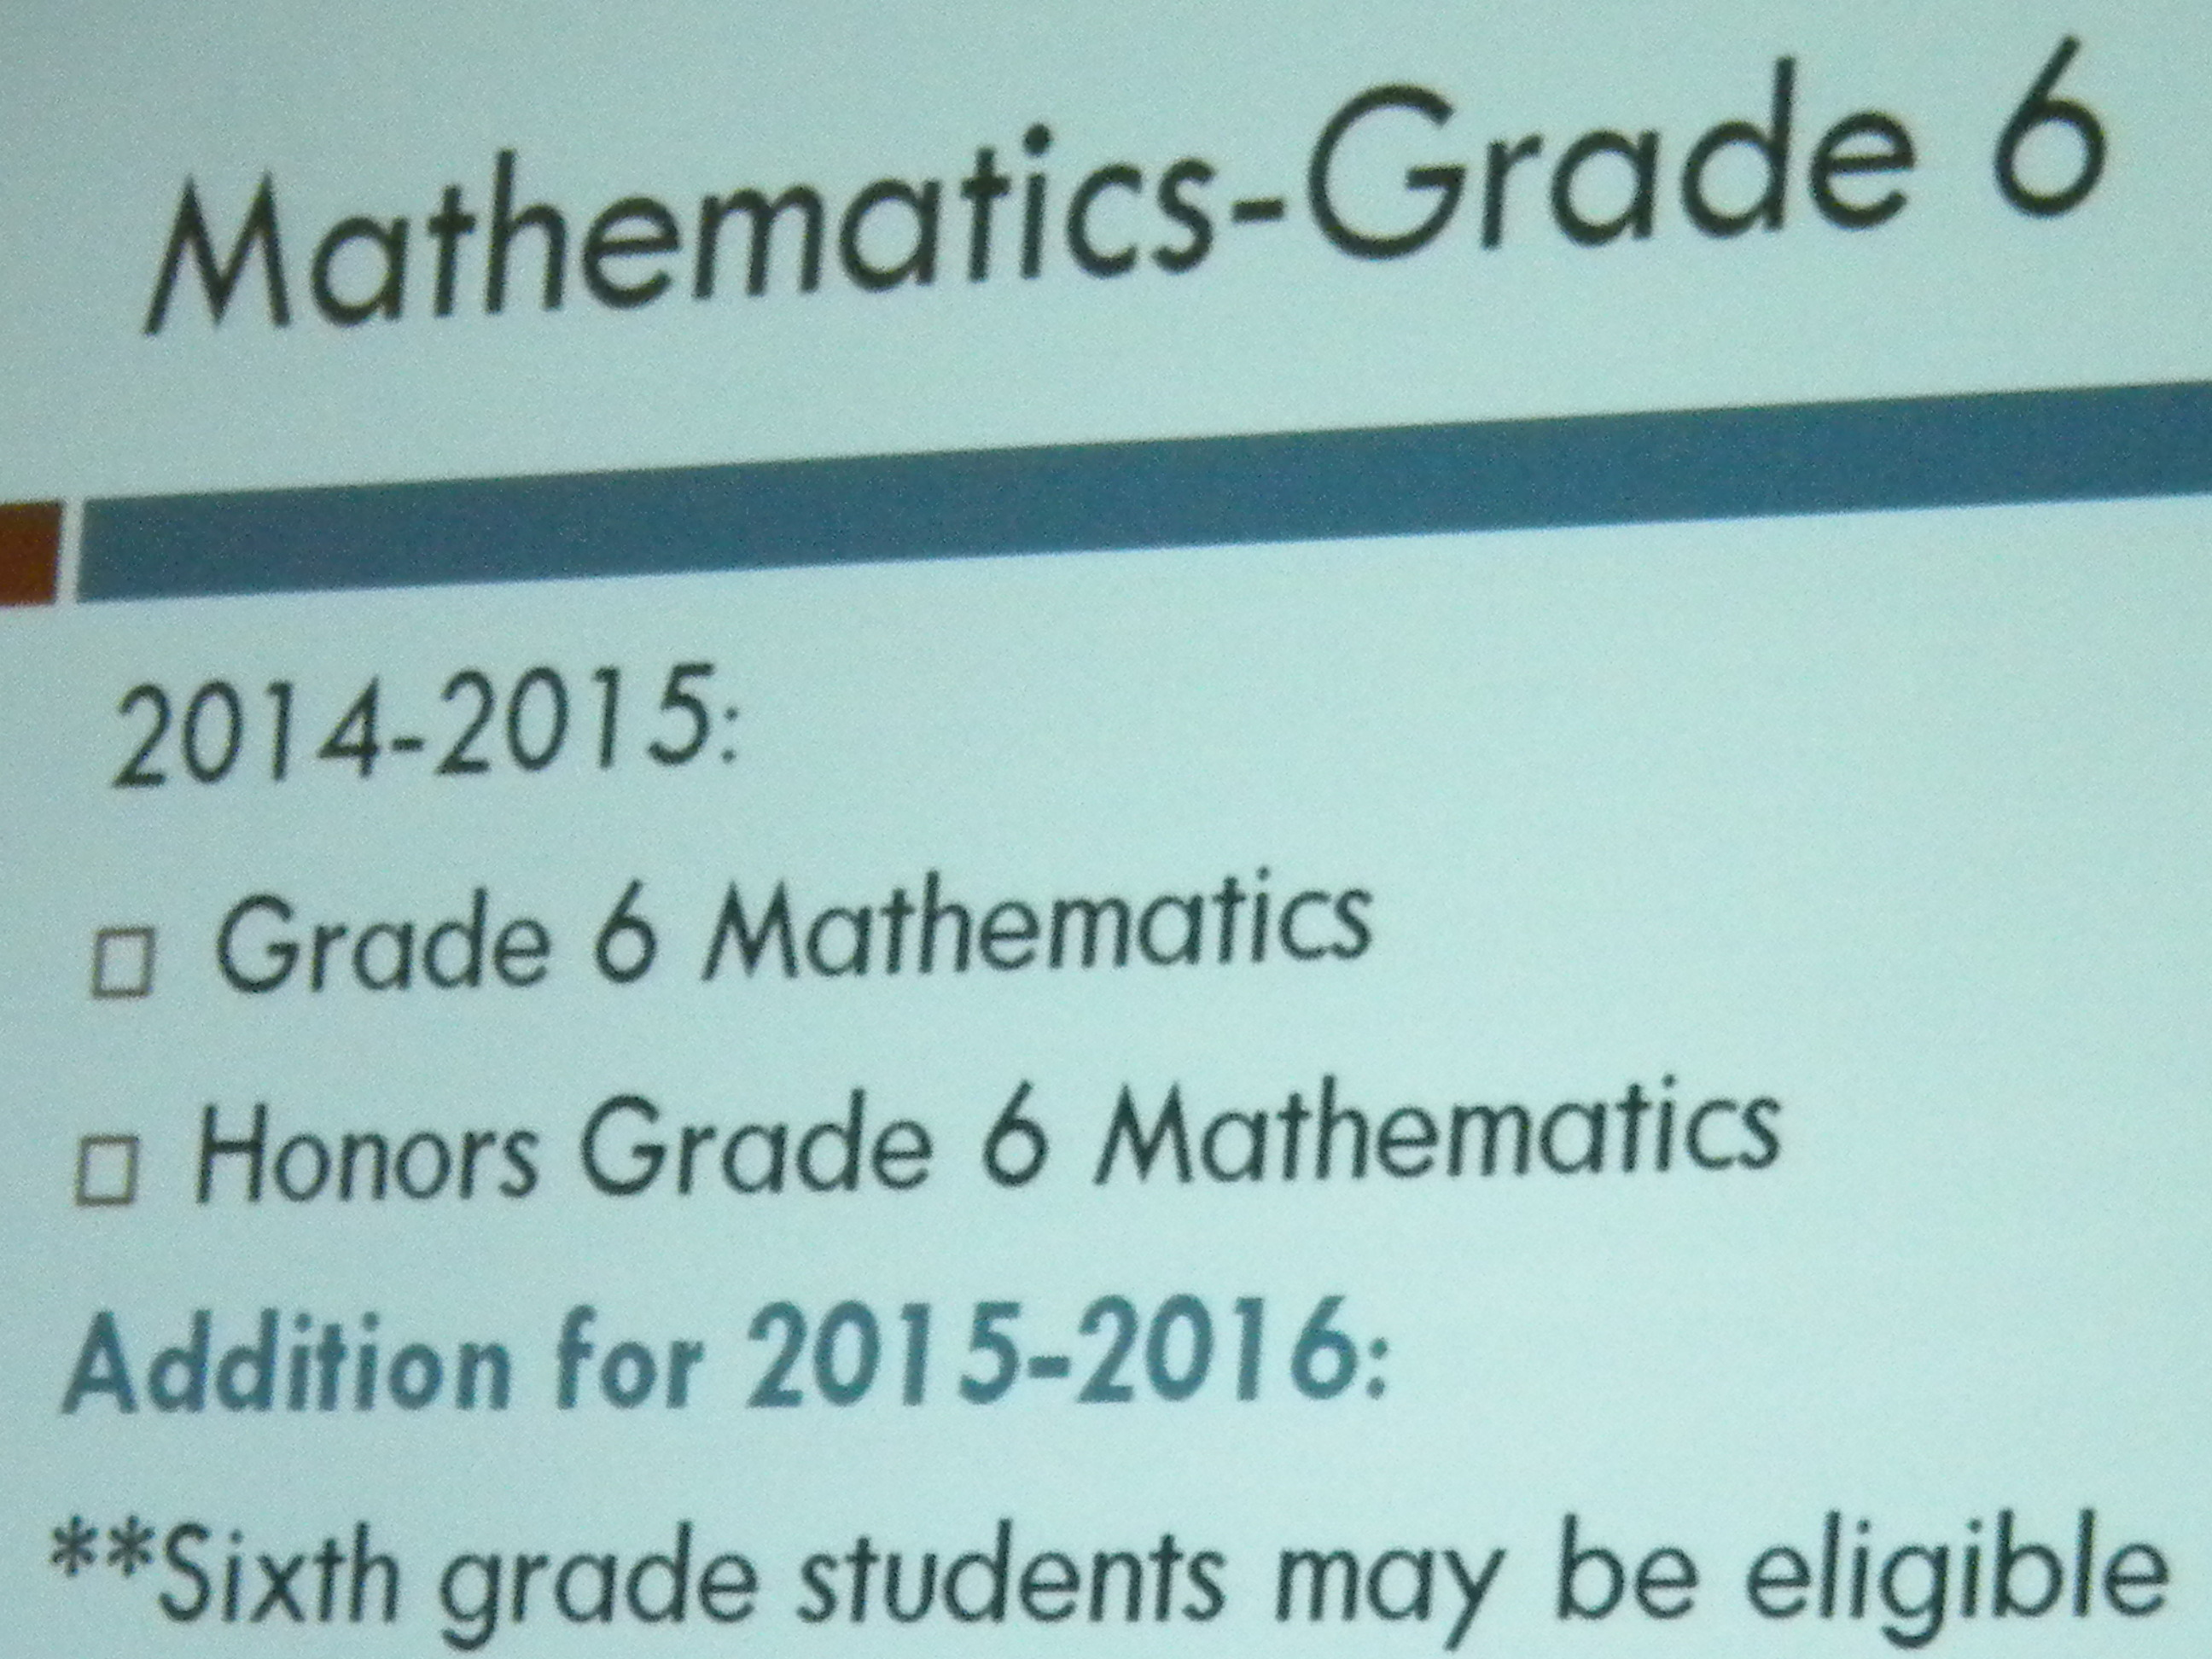 Accelerated Math for Sixth Graders is Coming to Chatham Middle ...